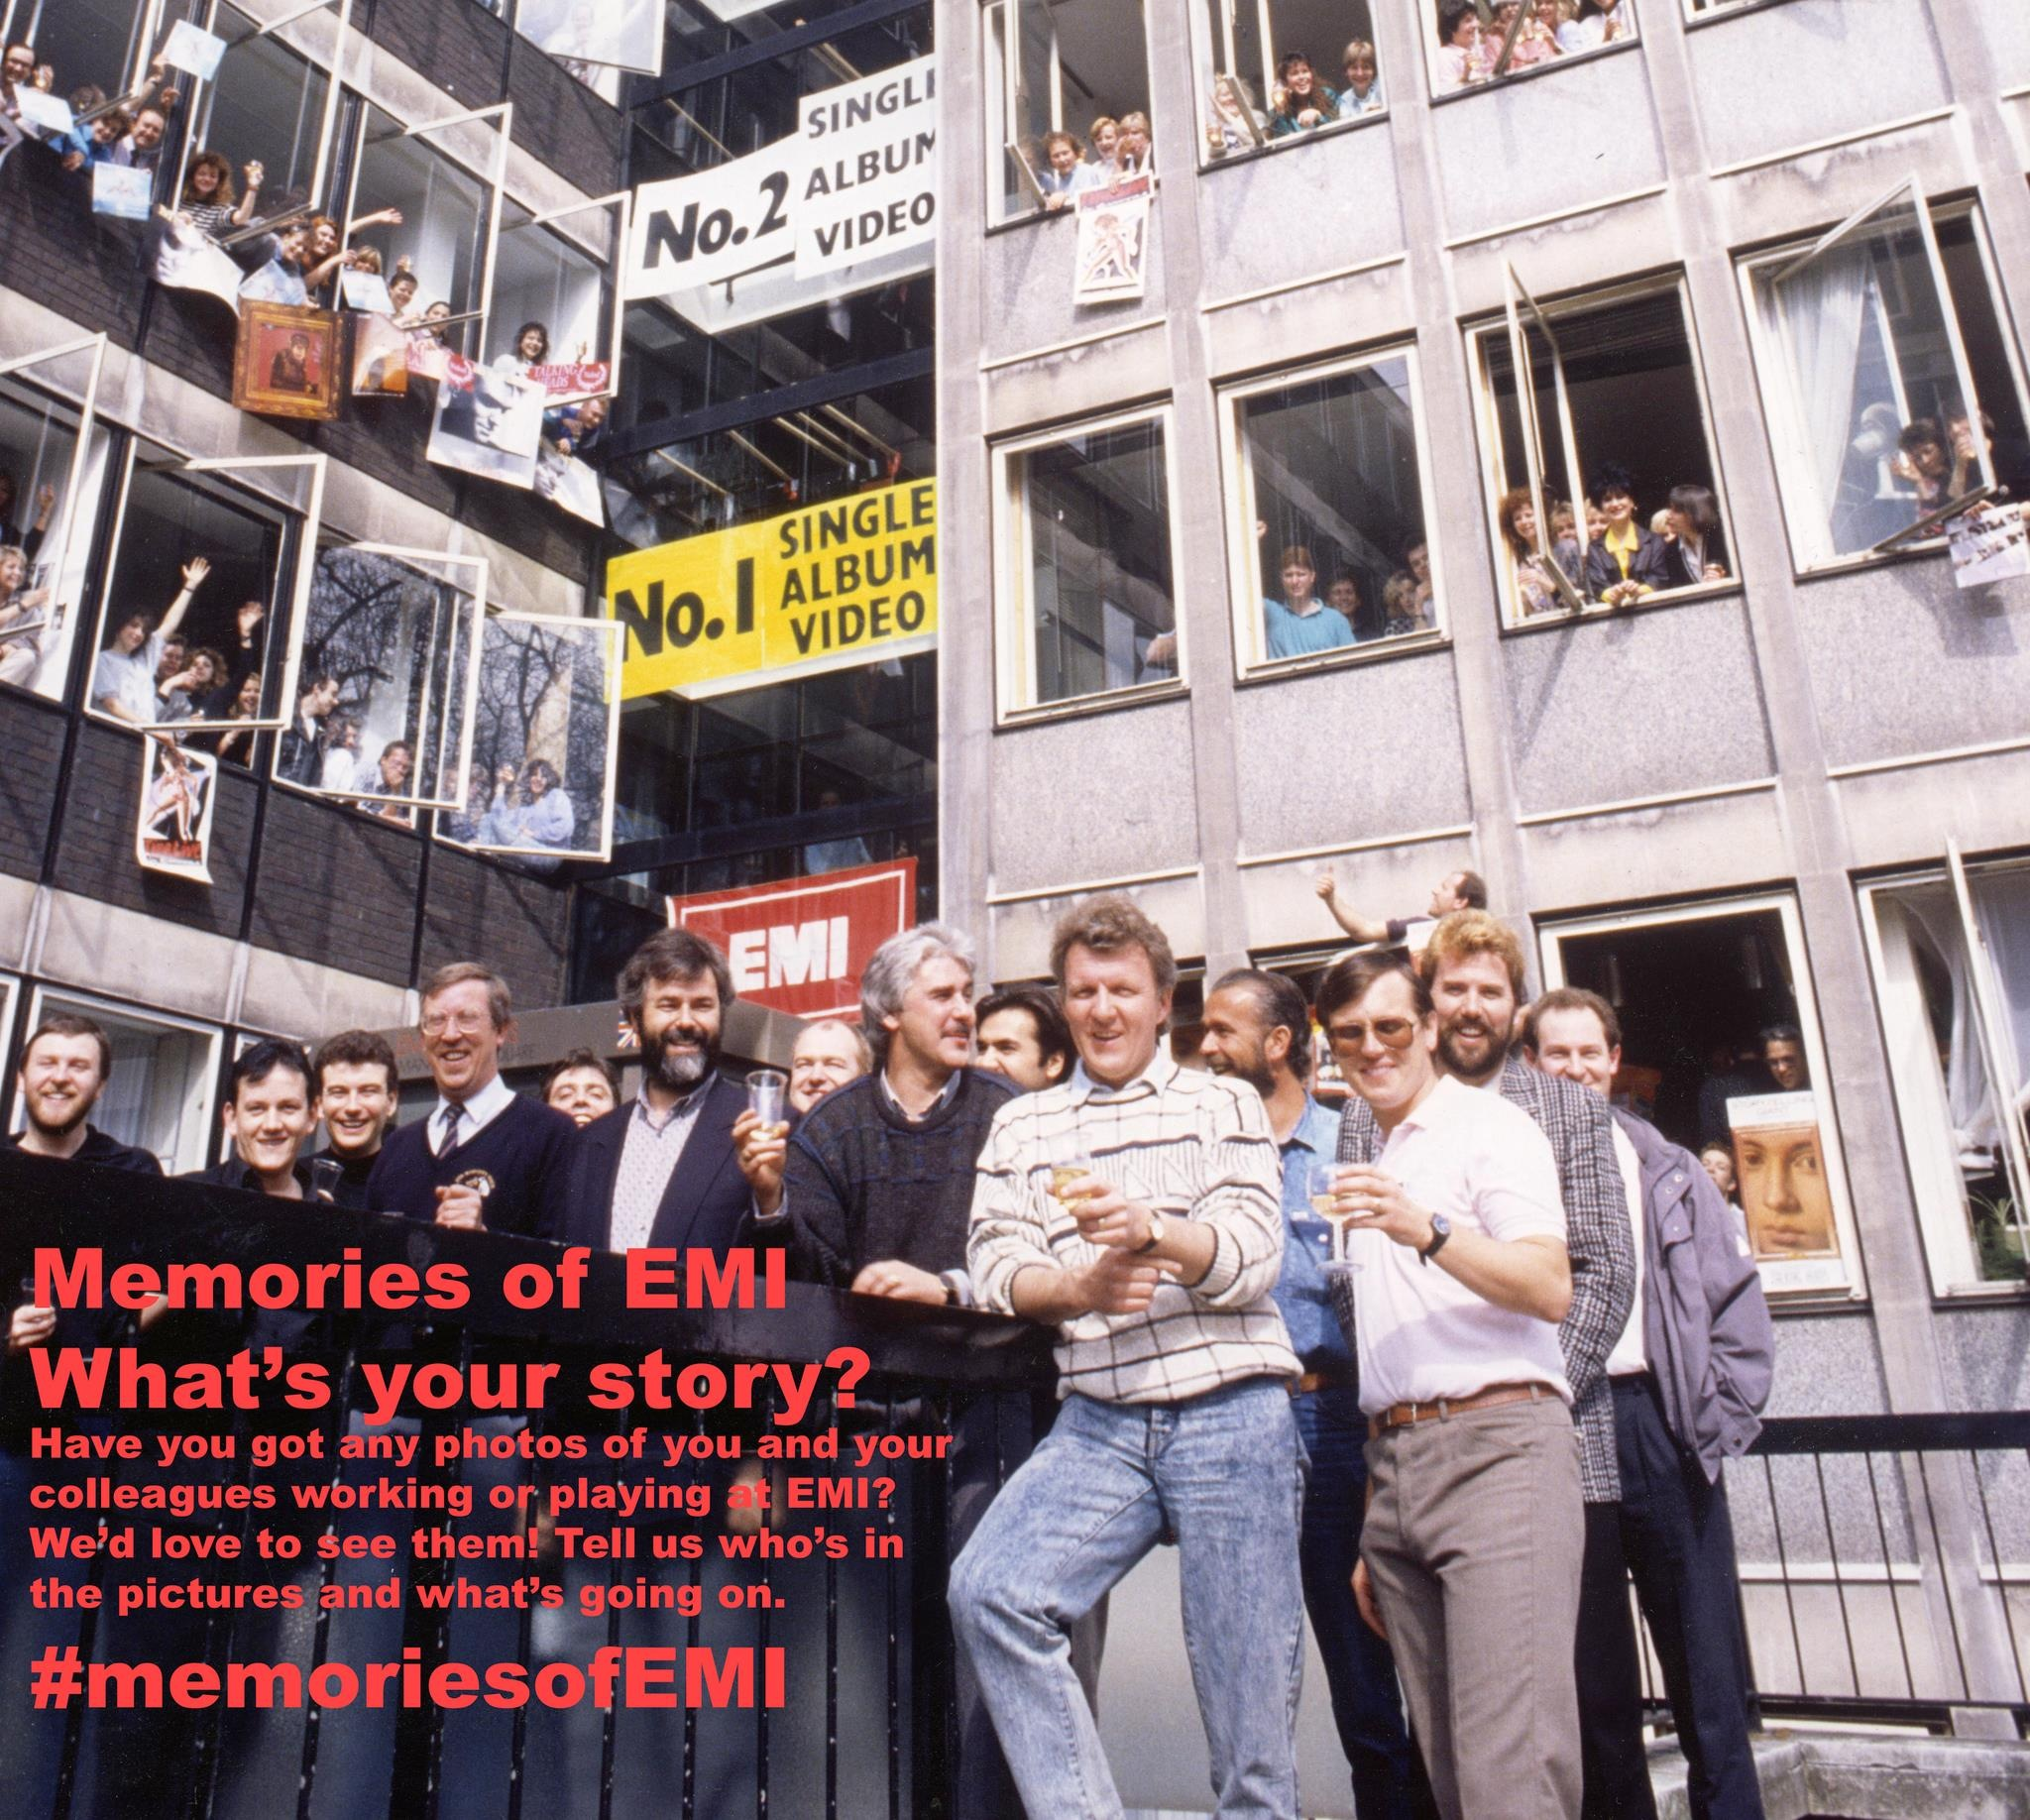 EMI Records celebrating No. 1 Single, No.1 Album and No. 1 Video Manchester Square 1987 Left to right - Malcolm Hill, Mike Andrews, Malcolm Anderson, Chips Chipperfield, Rupert Perry, Tony Wadsworth, Martin Haxby, Nick Gatfield, David Hughes, Andrew Prior Courtesy of the Rupert Perry Collection © EMI Group Archive Trust